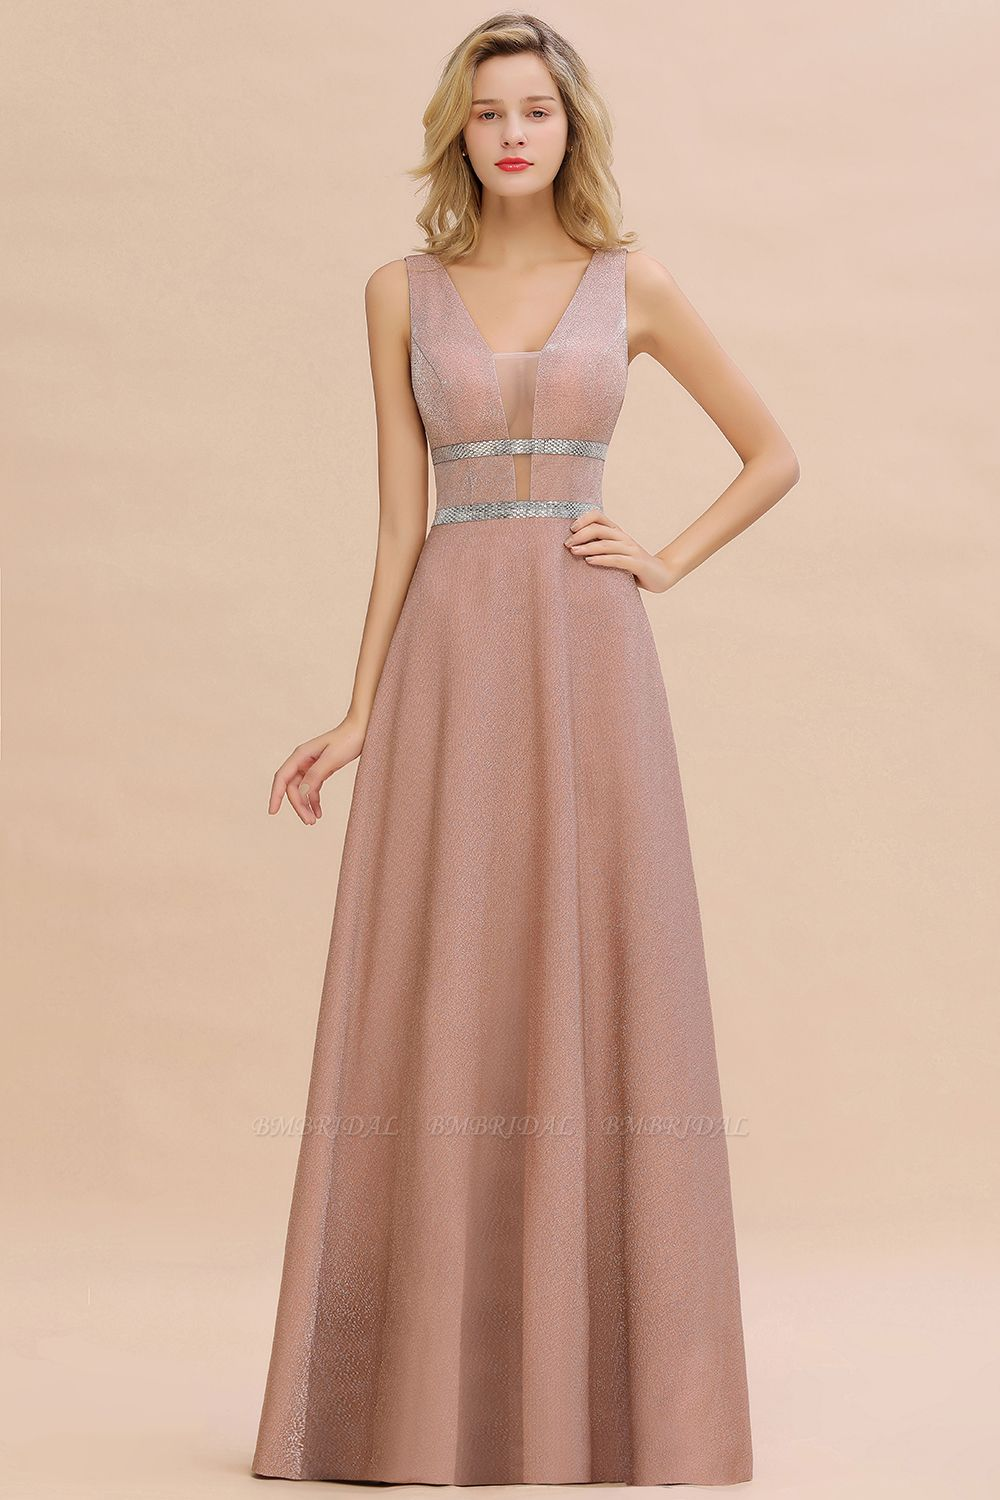 Shinning V-Neck Sleeveless Long Prom Dress Online With Zipper Back